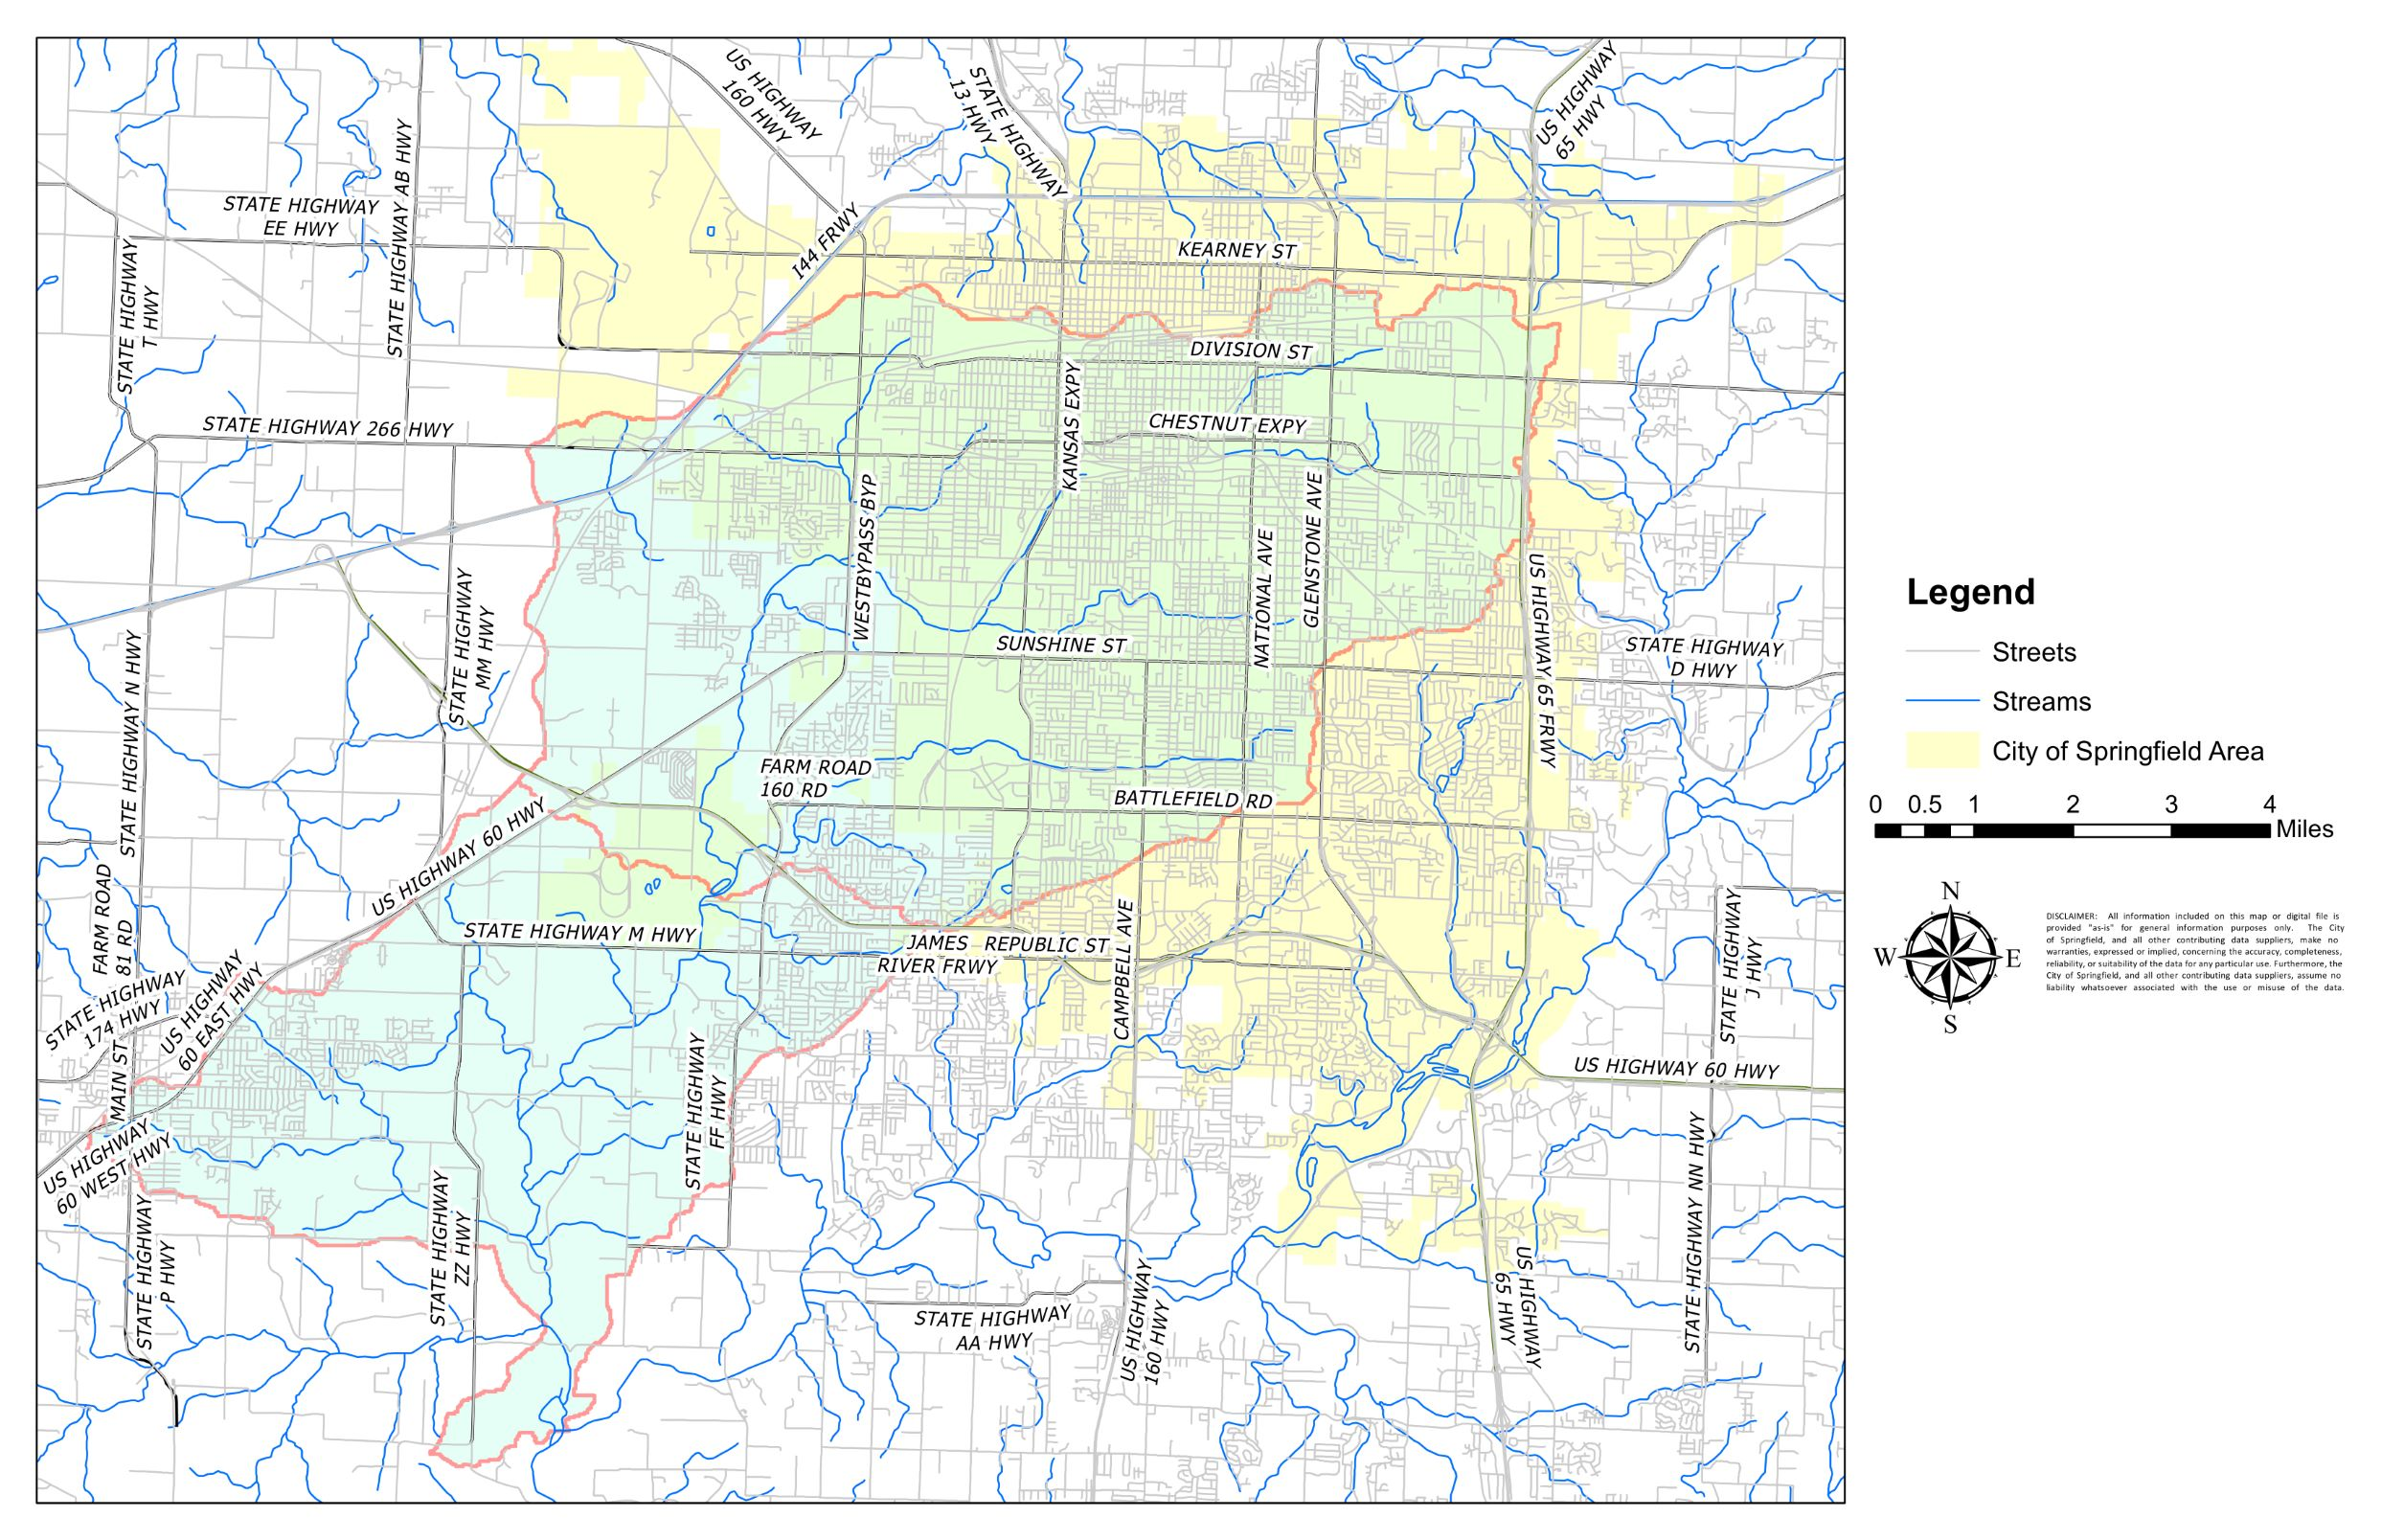 (The Wilsons Creek Grant Project area is outlined in red.)